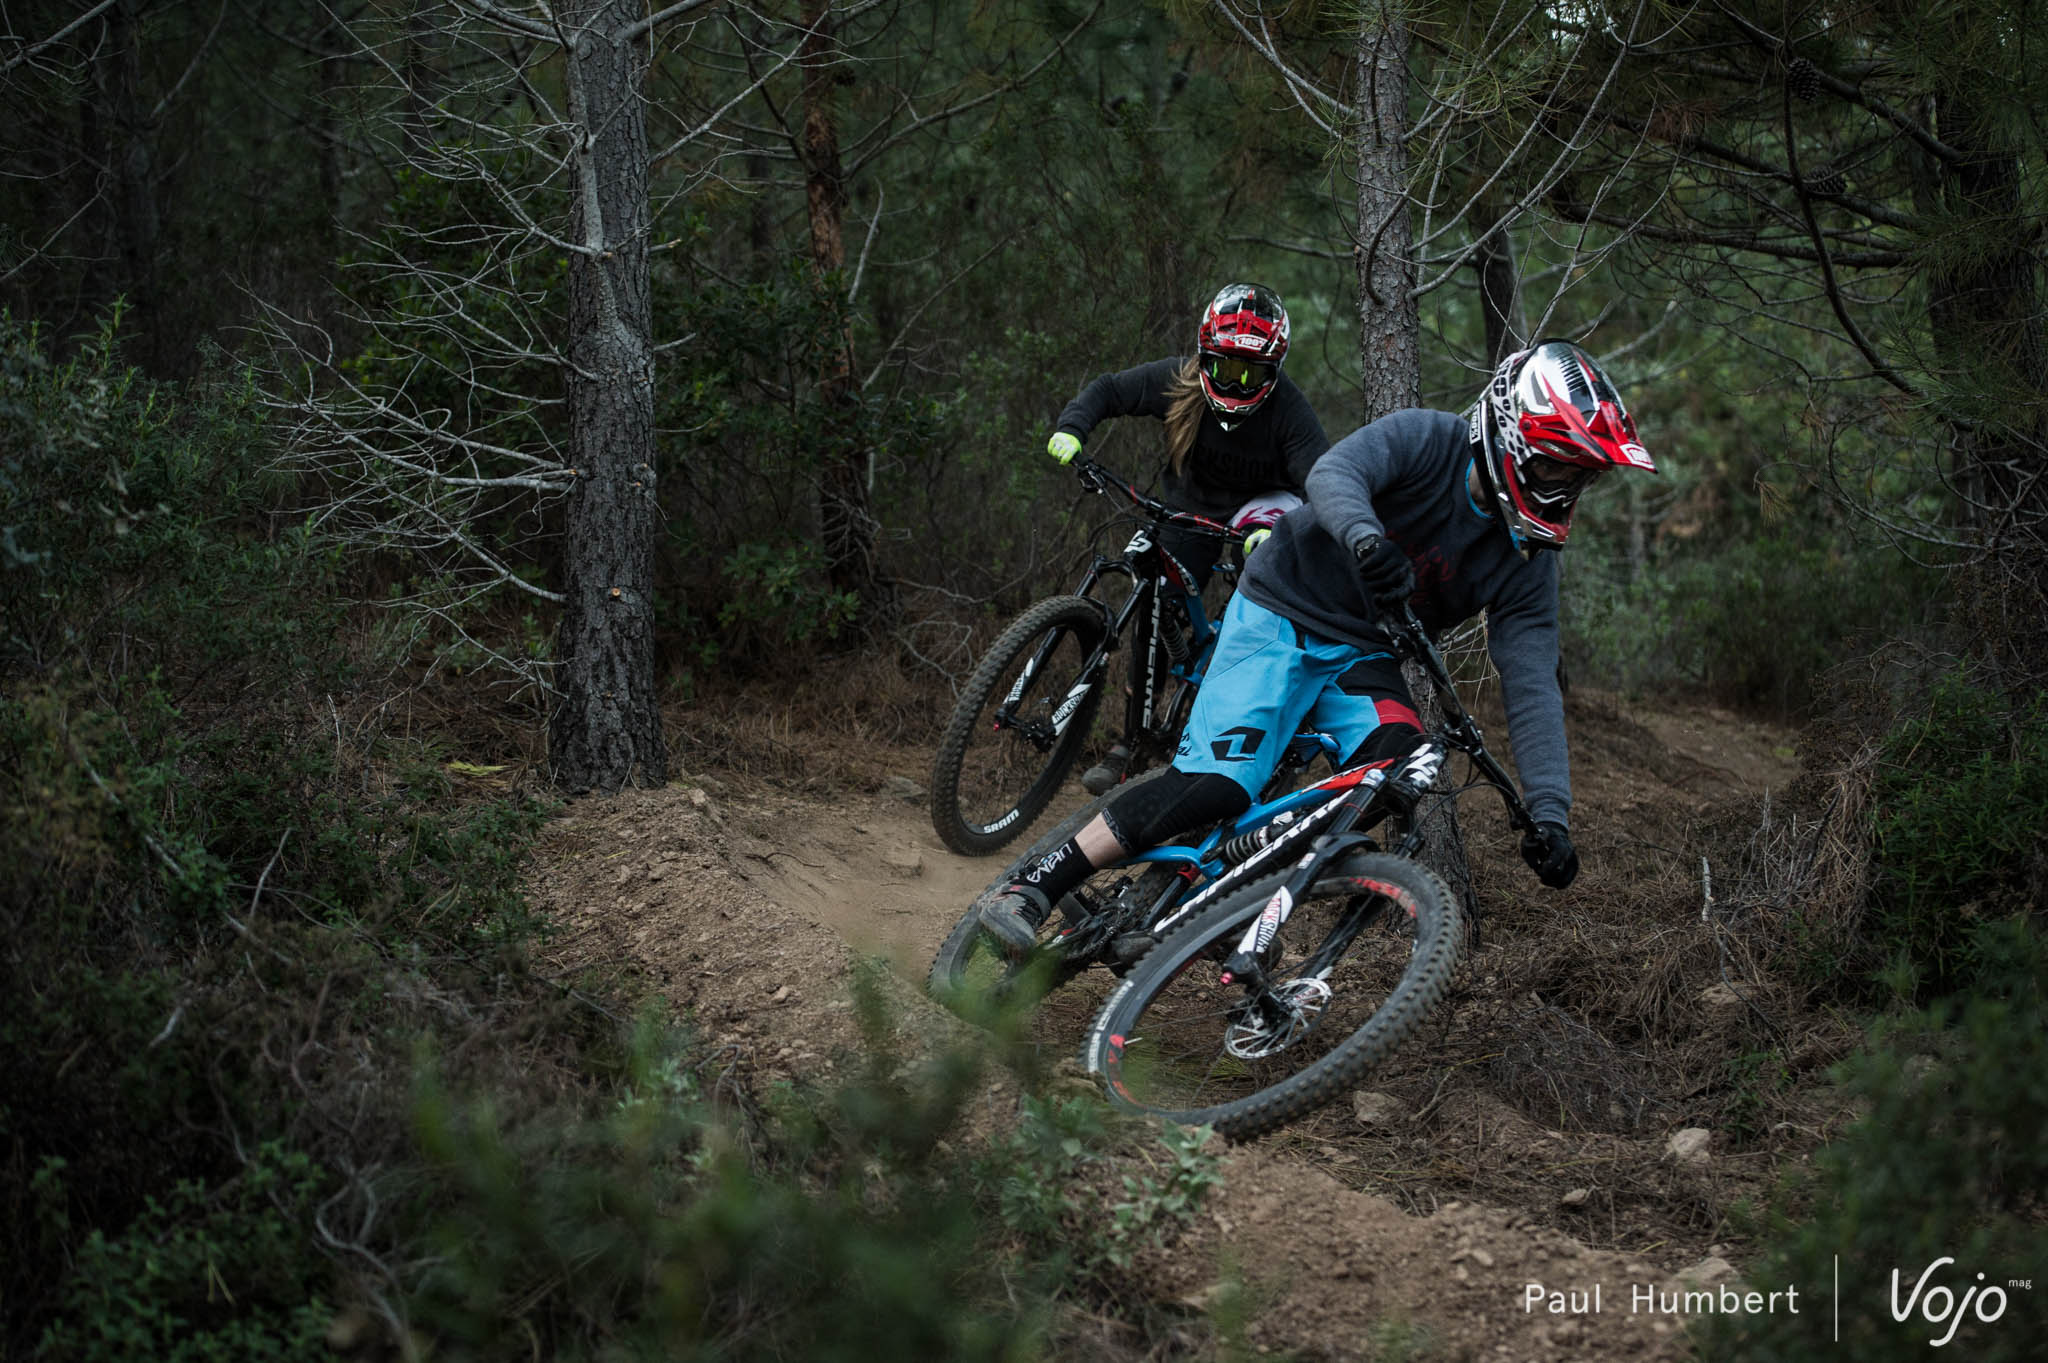 dailly-gallean-azur-bike-park-2017-vojo-paul-humbert-9